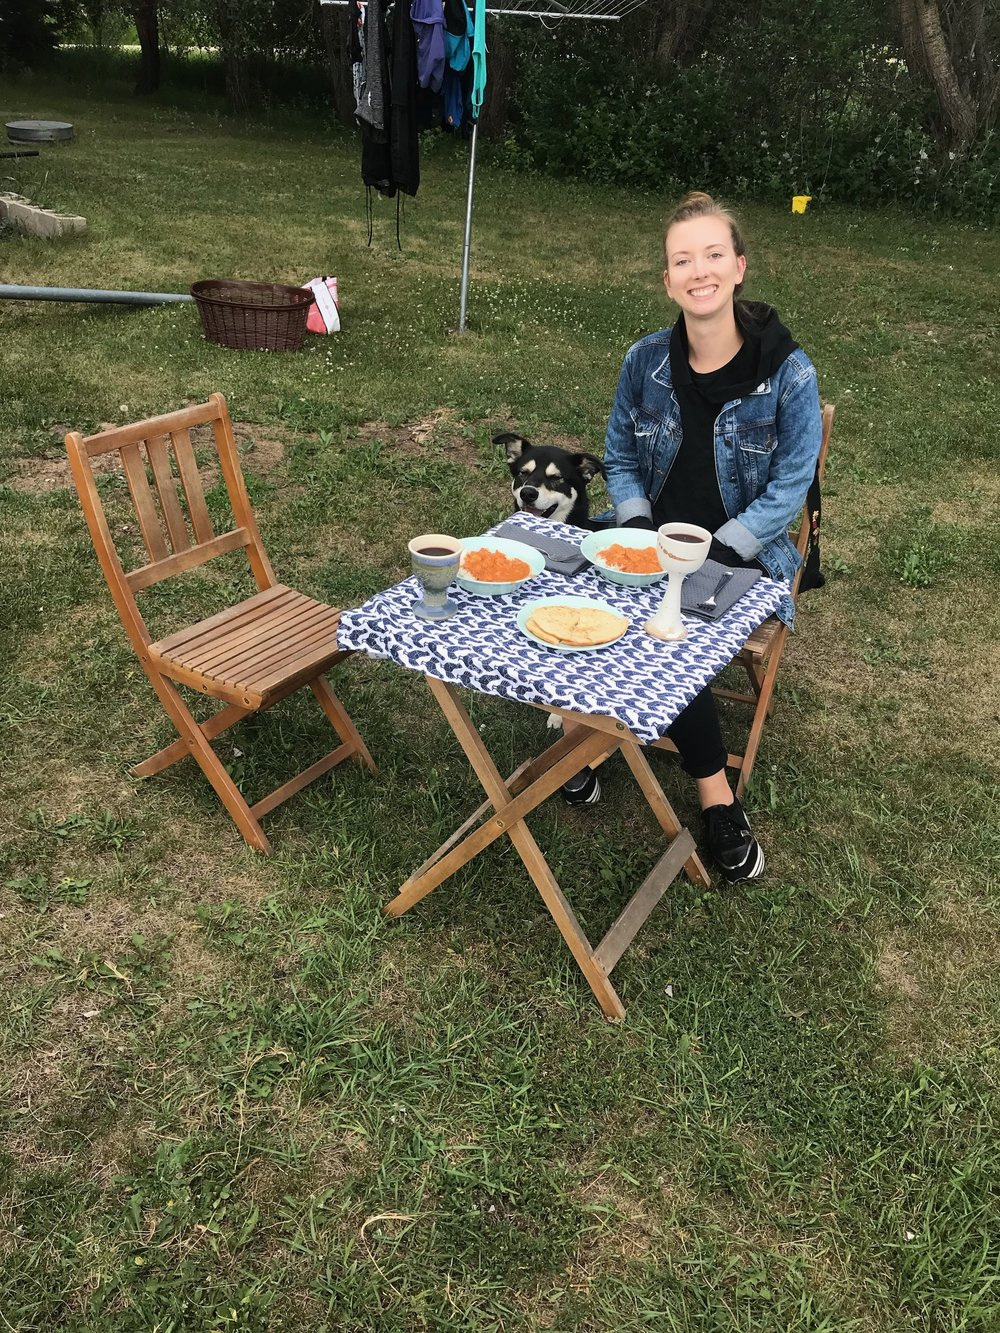 Like a true Ukrainian, I try to spend as much time as possible outdoors and with my family, like during this fabulous dinner my sister served me one evening in her back yard. Photo by Breanne Vitt.